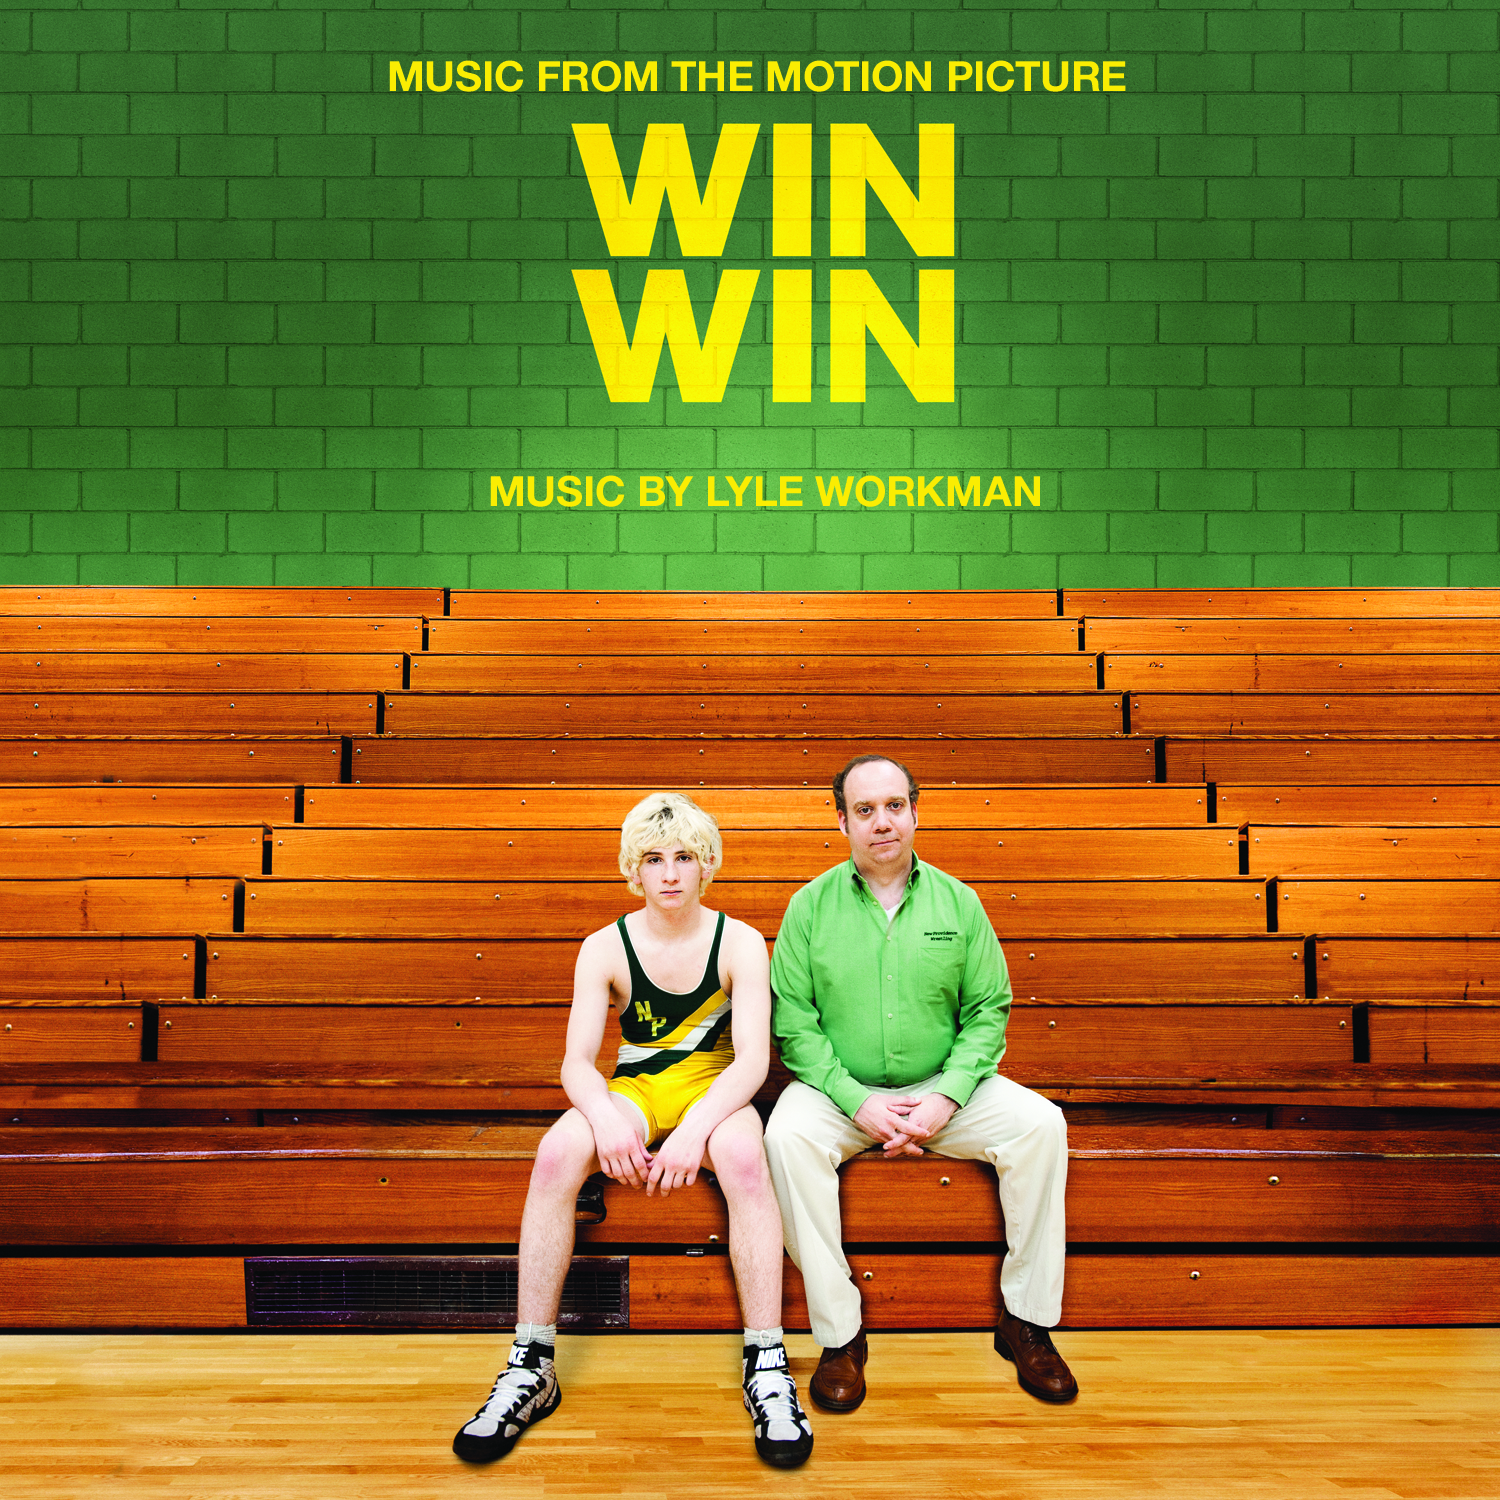 The National's Original Song From 'Win Win Soundtrack' Is Oscar-Eligible